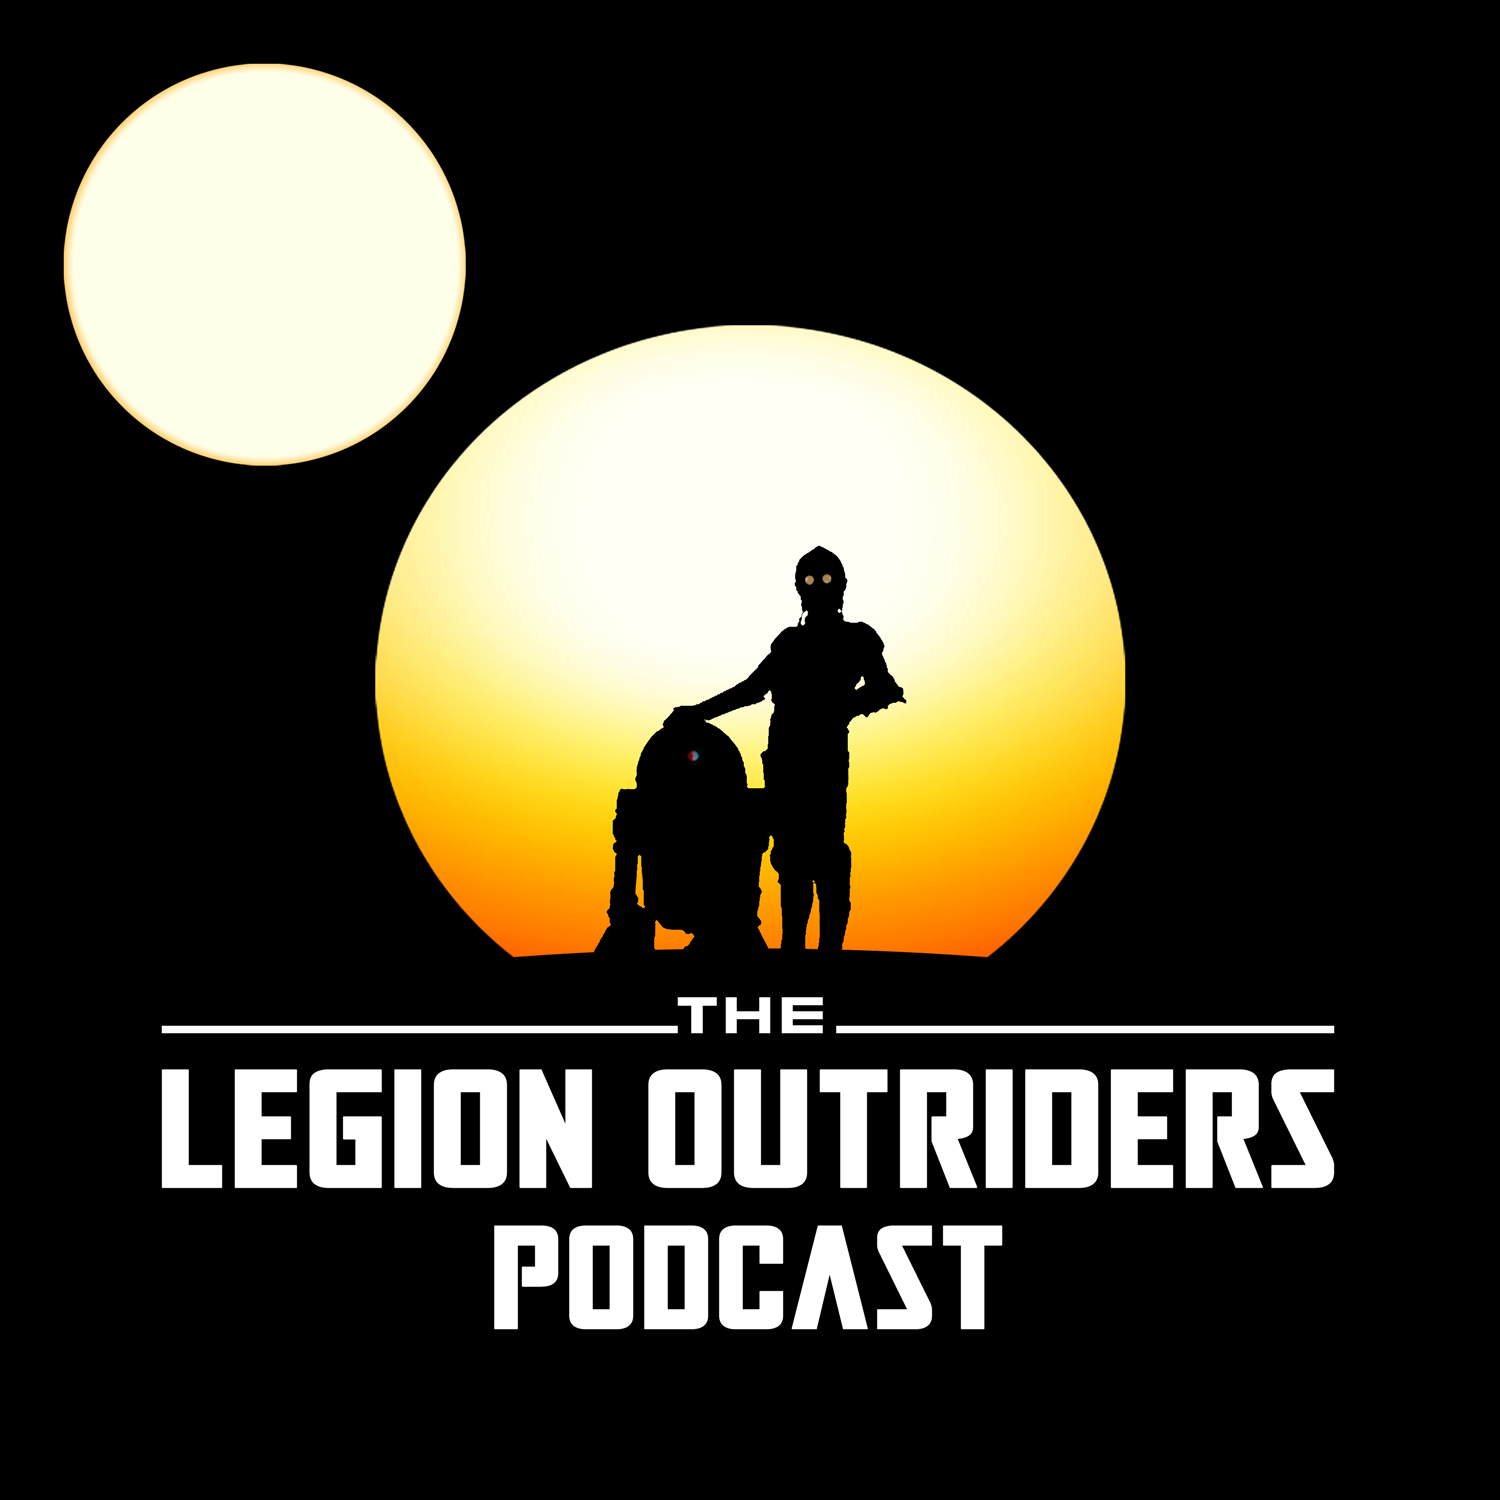 The Legion Outriders: A Star Wars Legion Podcast show art